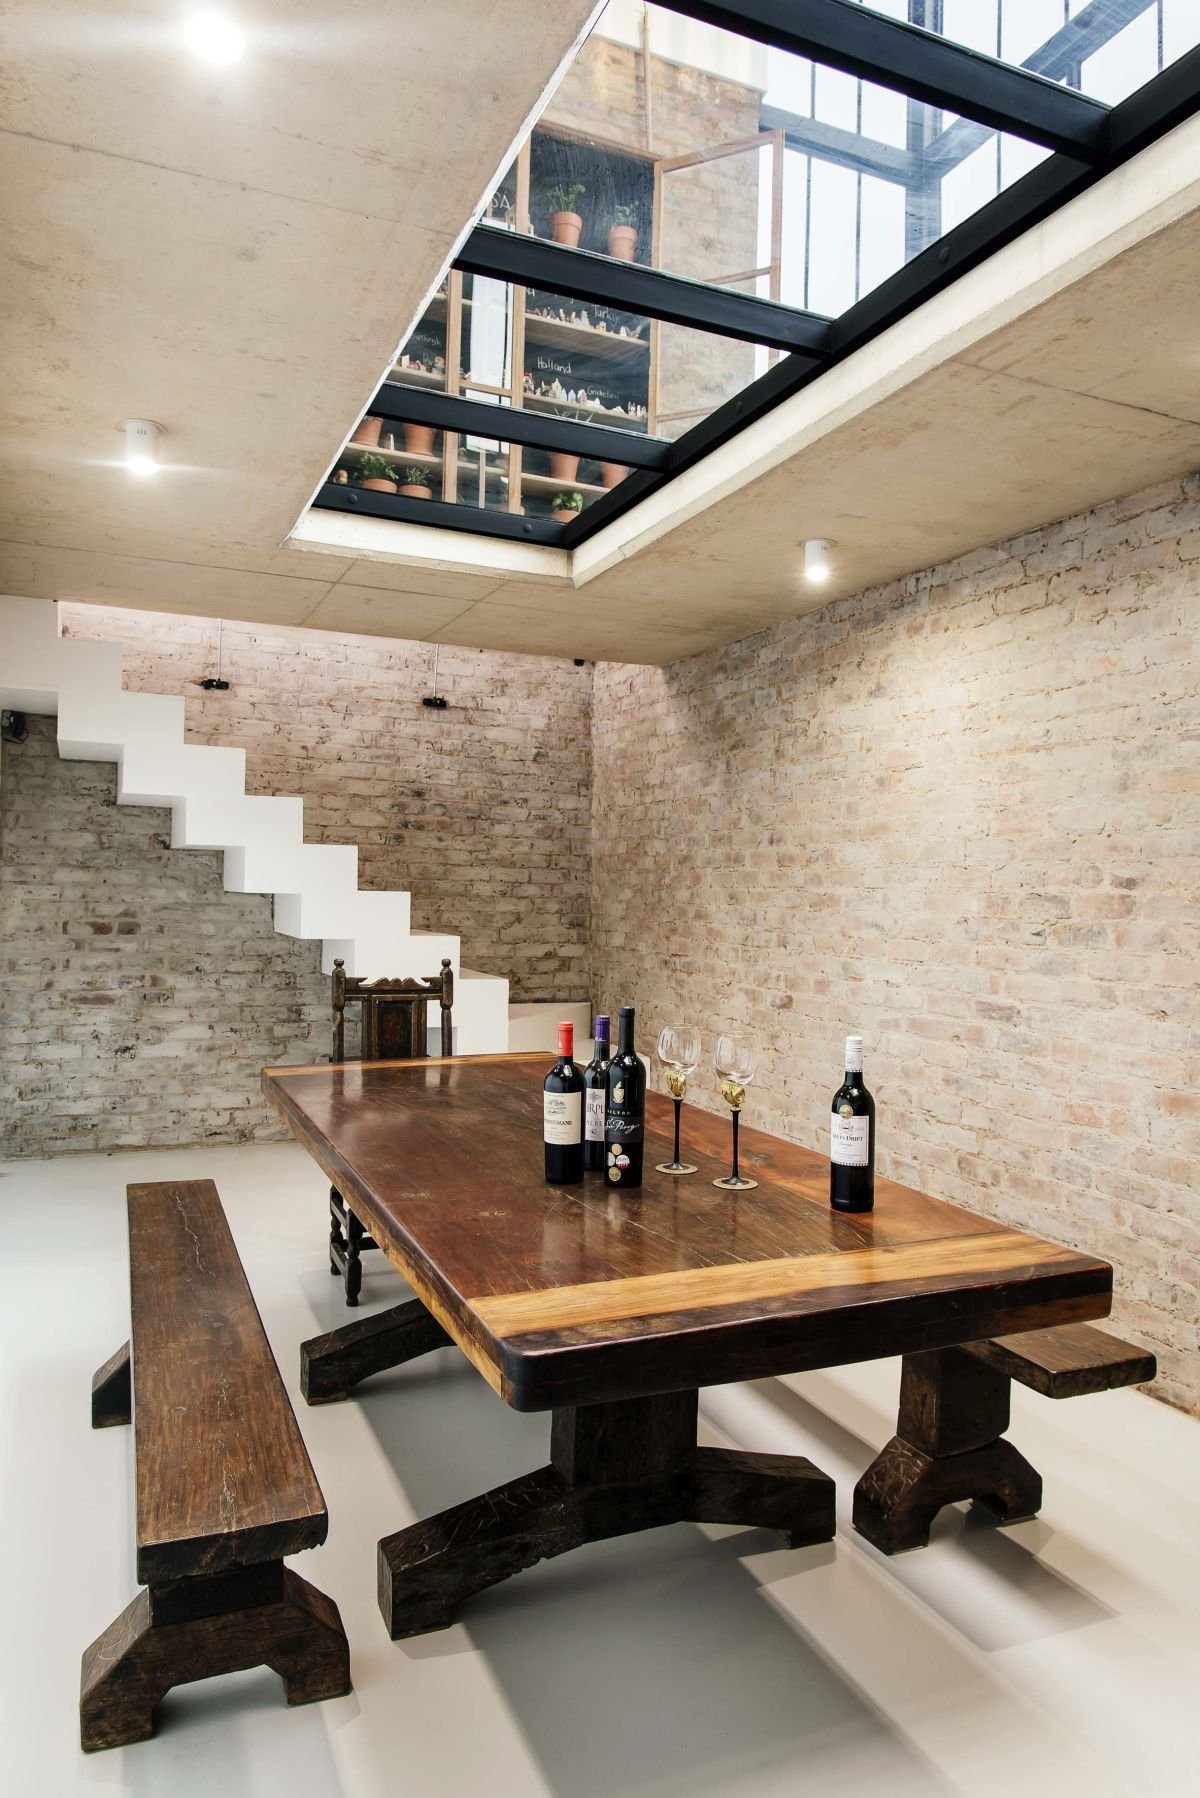 A secret staircase in the kitchen offers access to the underground wine cellar and a glass floor panel connects the two levels